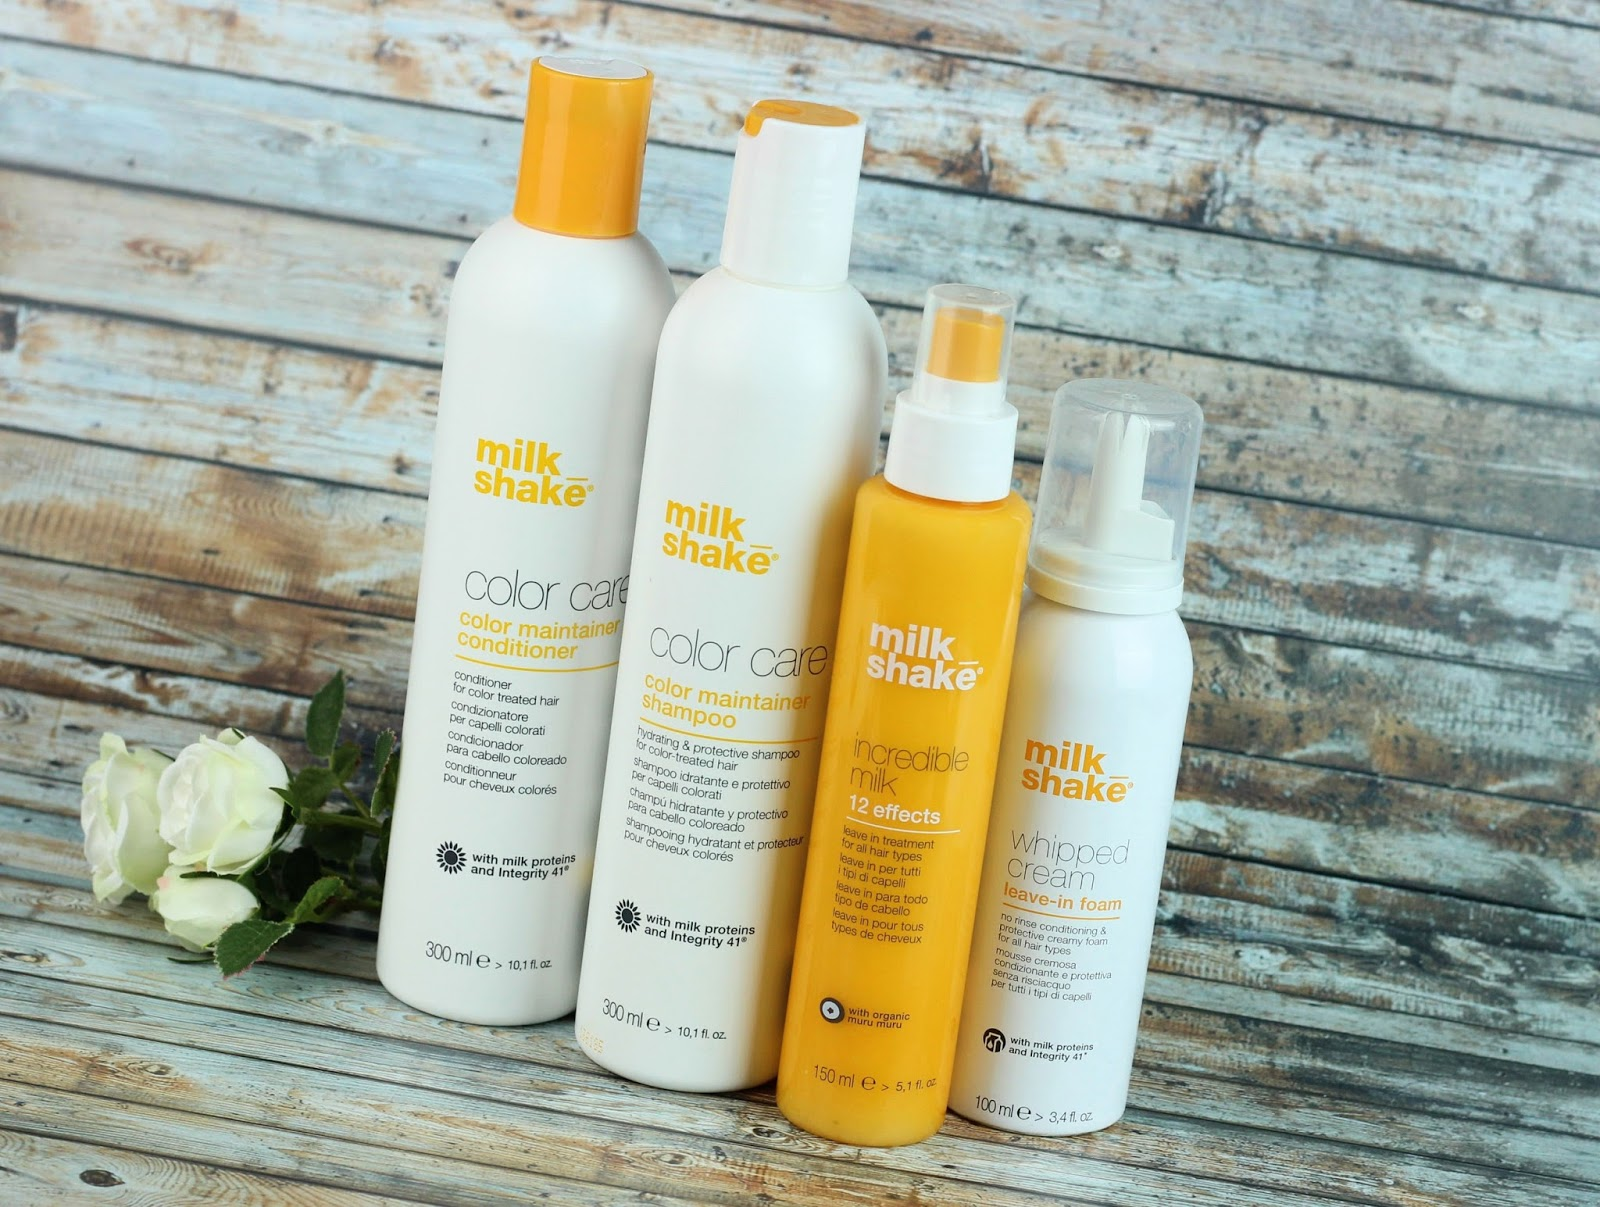 color care, Color Maintainer Conditioner, coloriertes haar, conditioner, conditioning whipped cream, haarpflege, incredible milk, leave in, milk_shake, review, shampoo, trendmeister beauty event, trockenes haar,